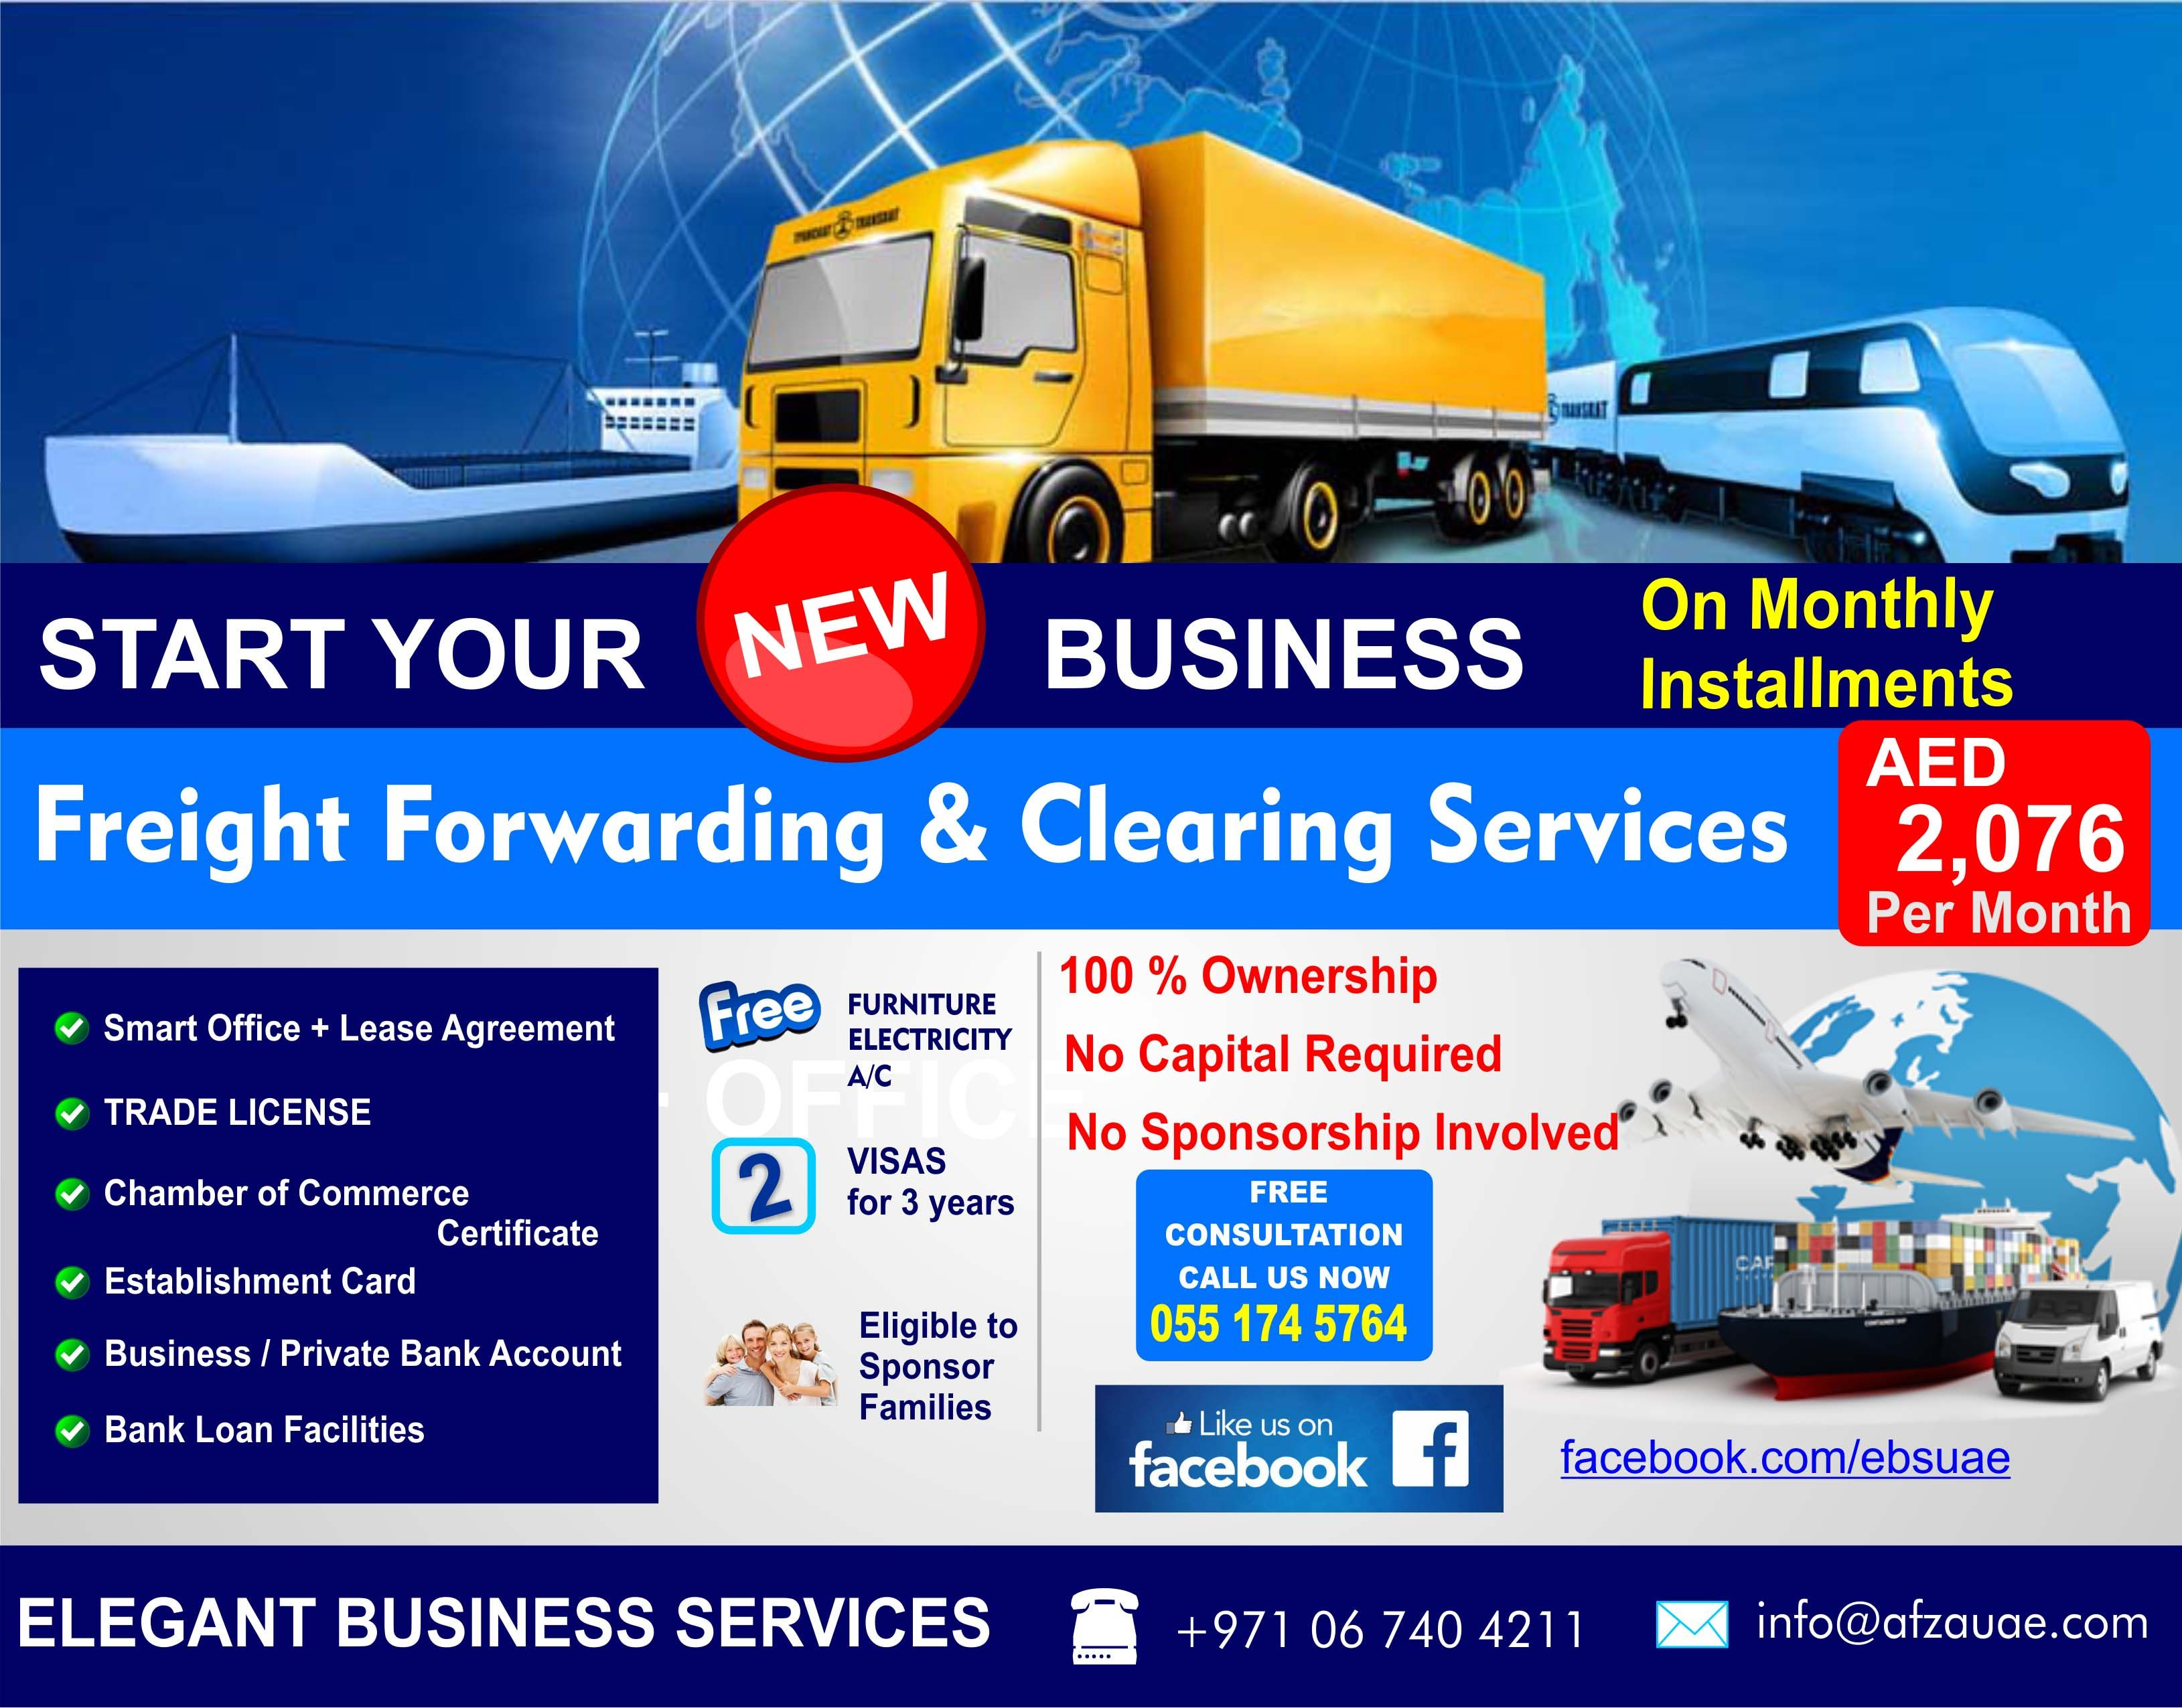 free business services